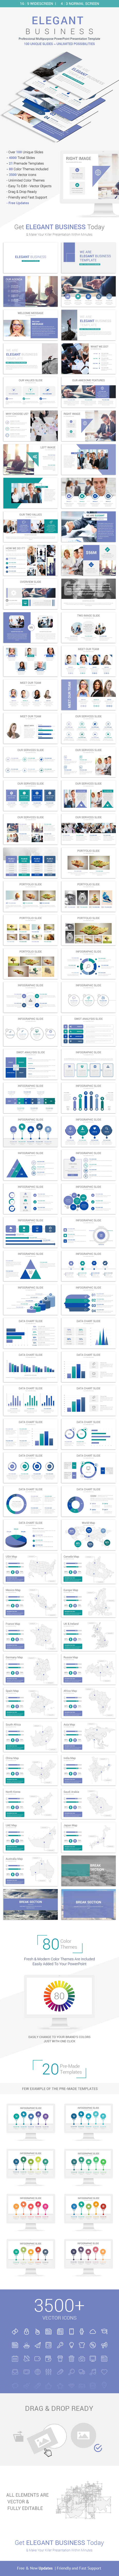 GraphicRiver Elegant Business PowerPoint Presentation Template 20463504